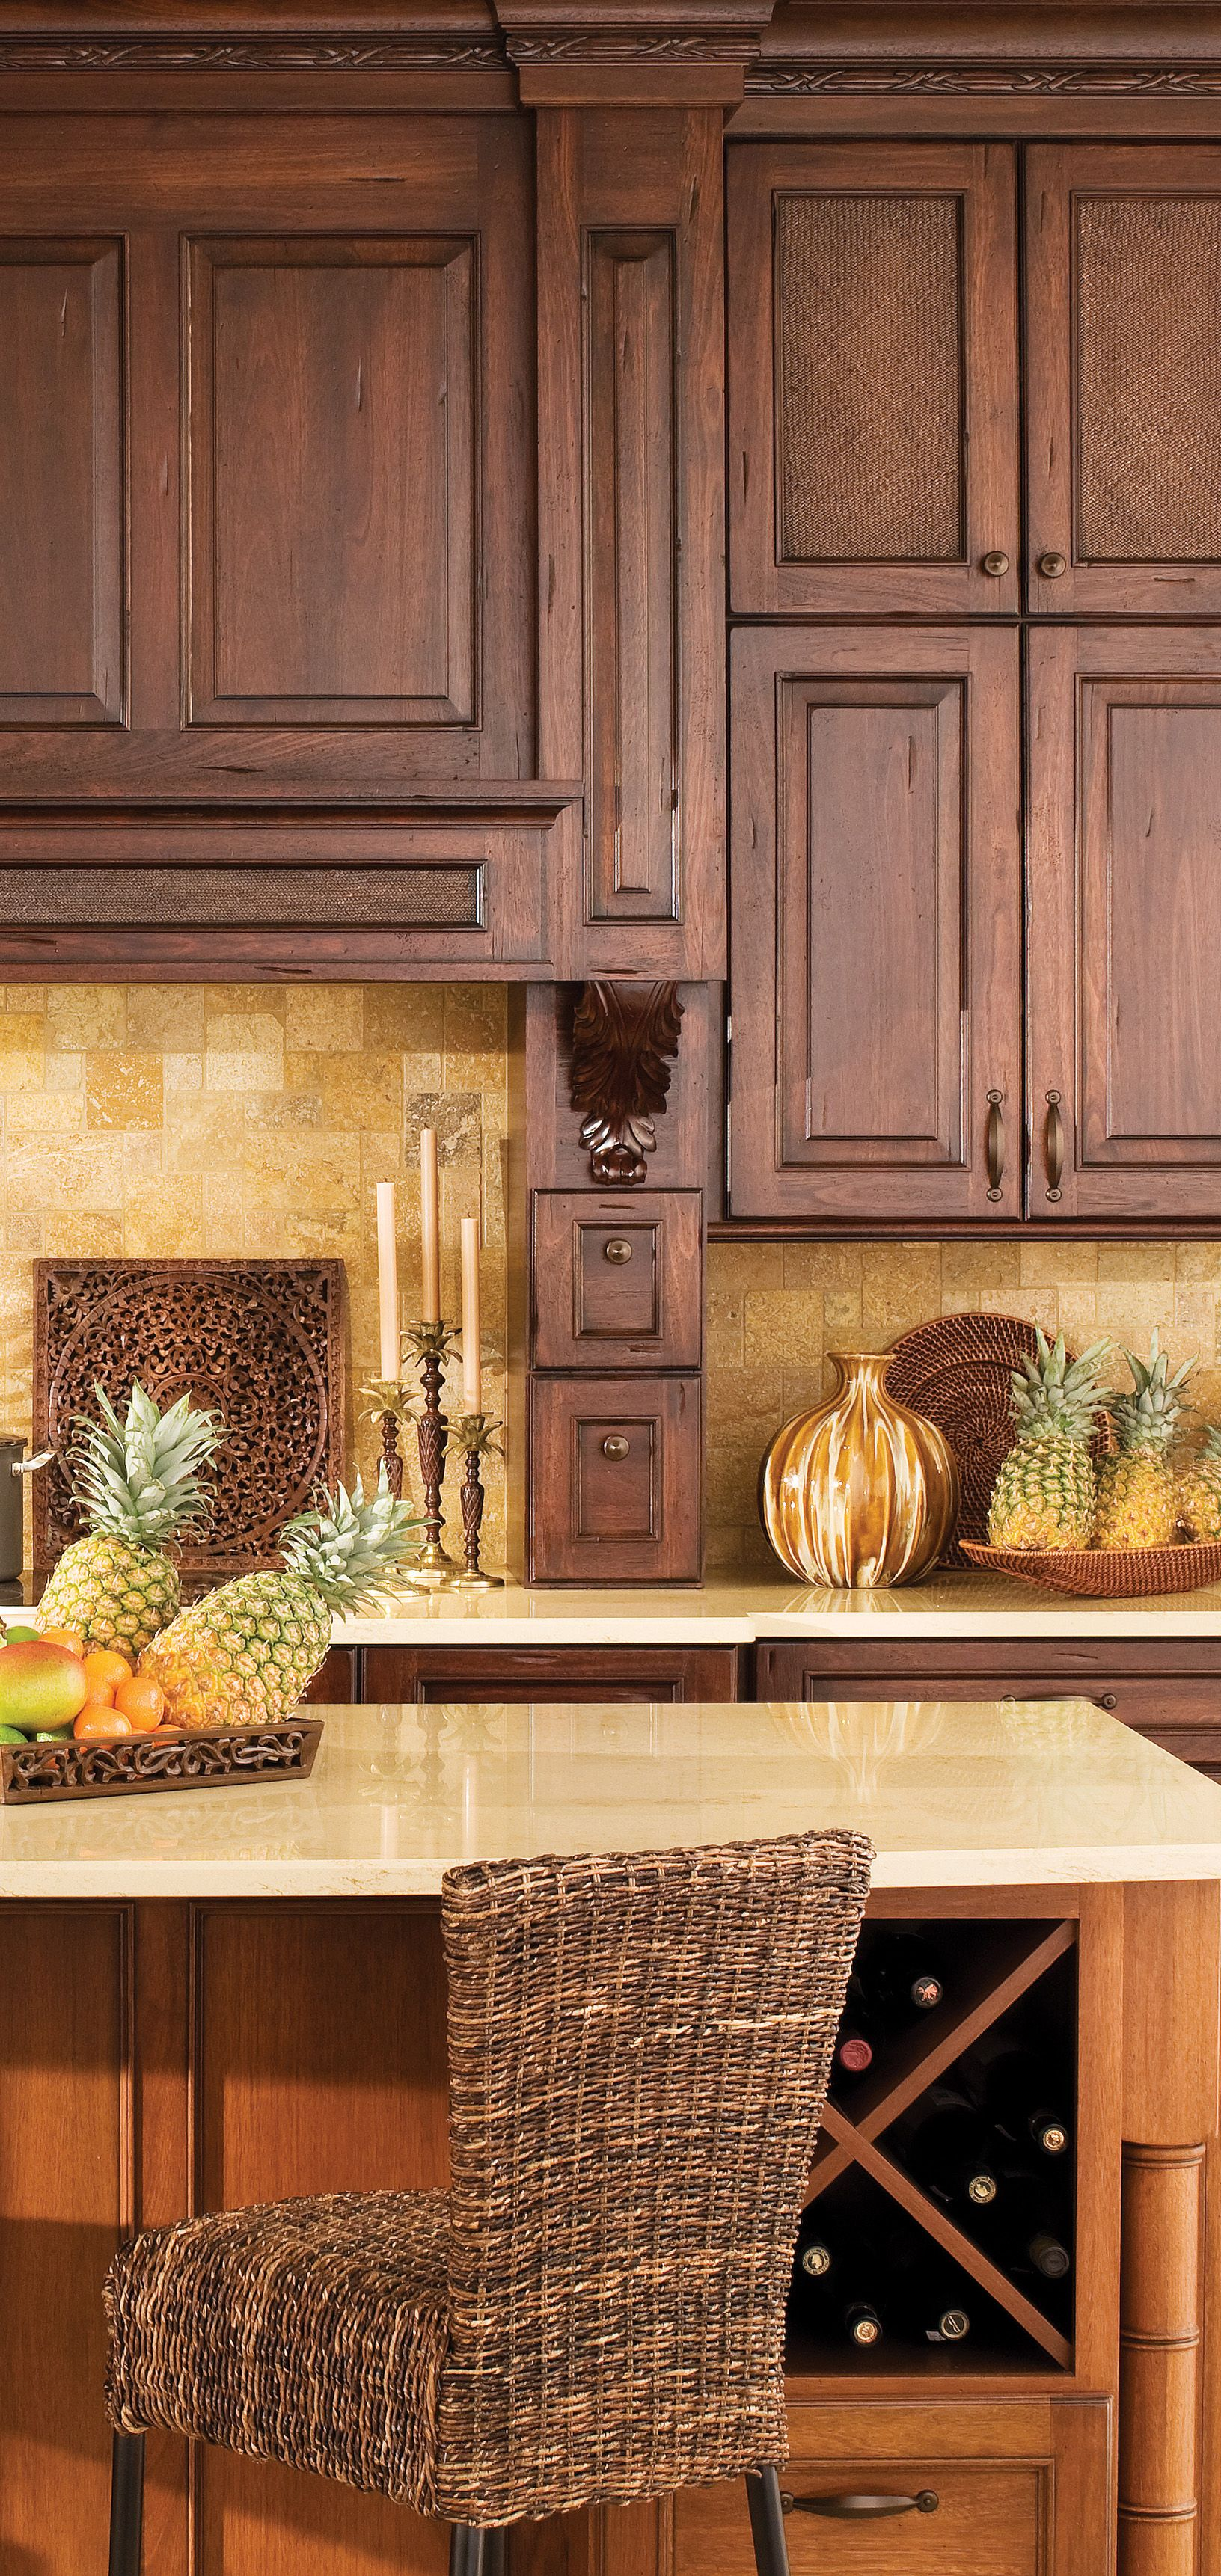 Tropical Kitchen Decor: Get The Look: How To Create A West Indies Style Kitchen